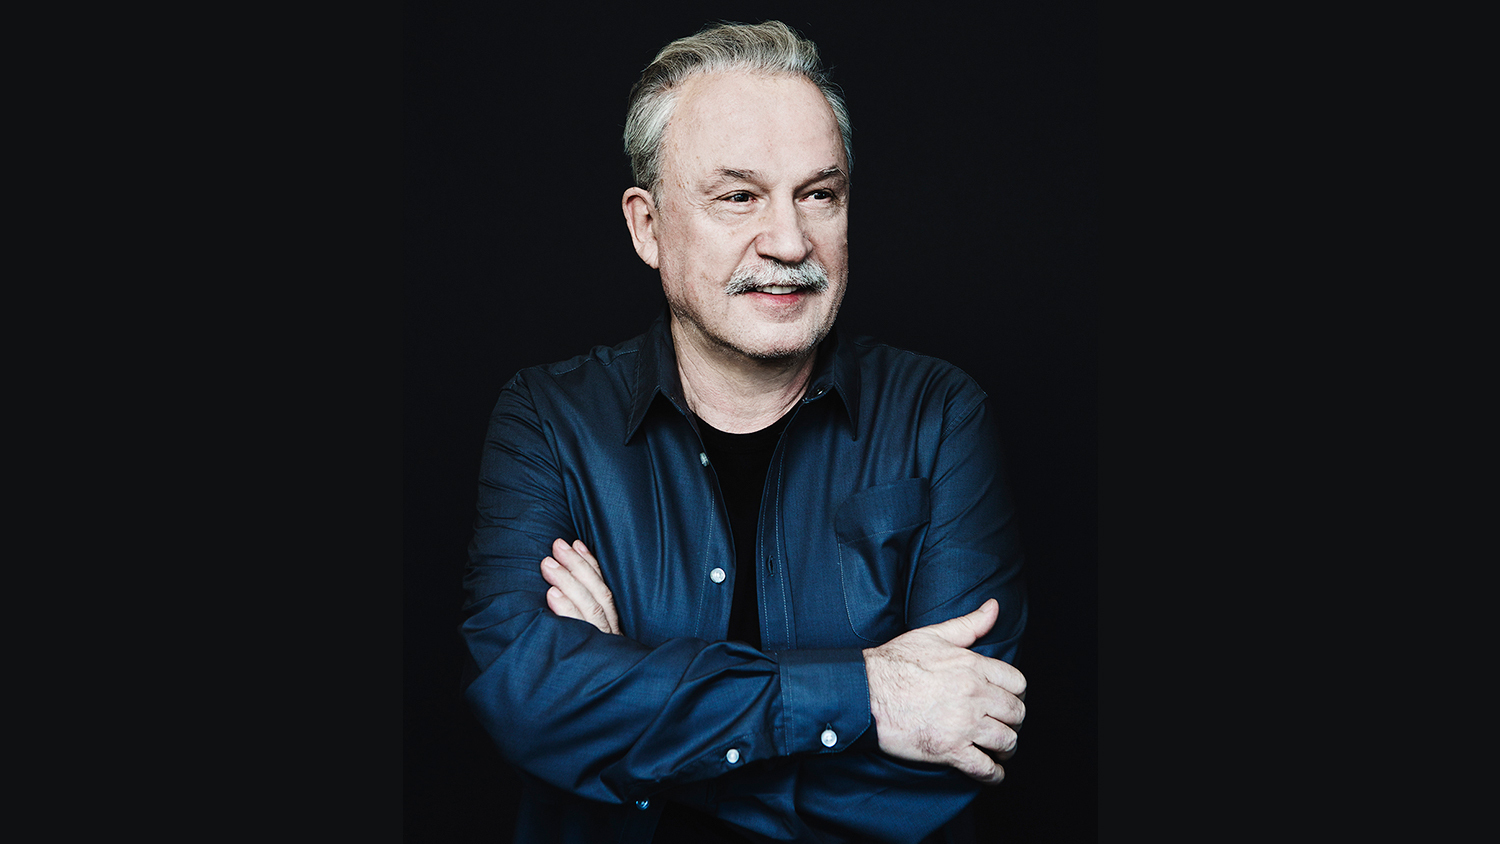 Disco pioneer Giorgio Moroder is back with a new album